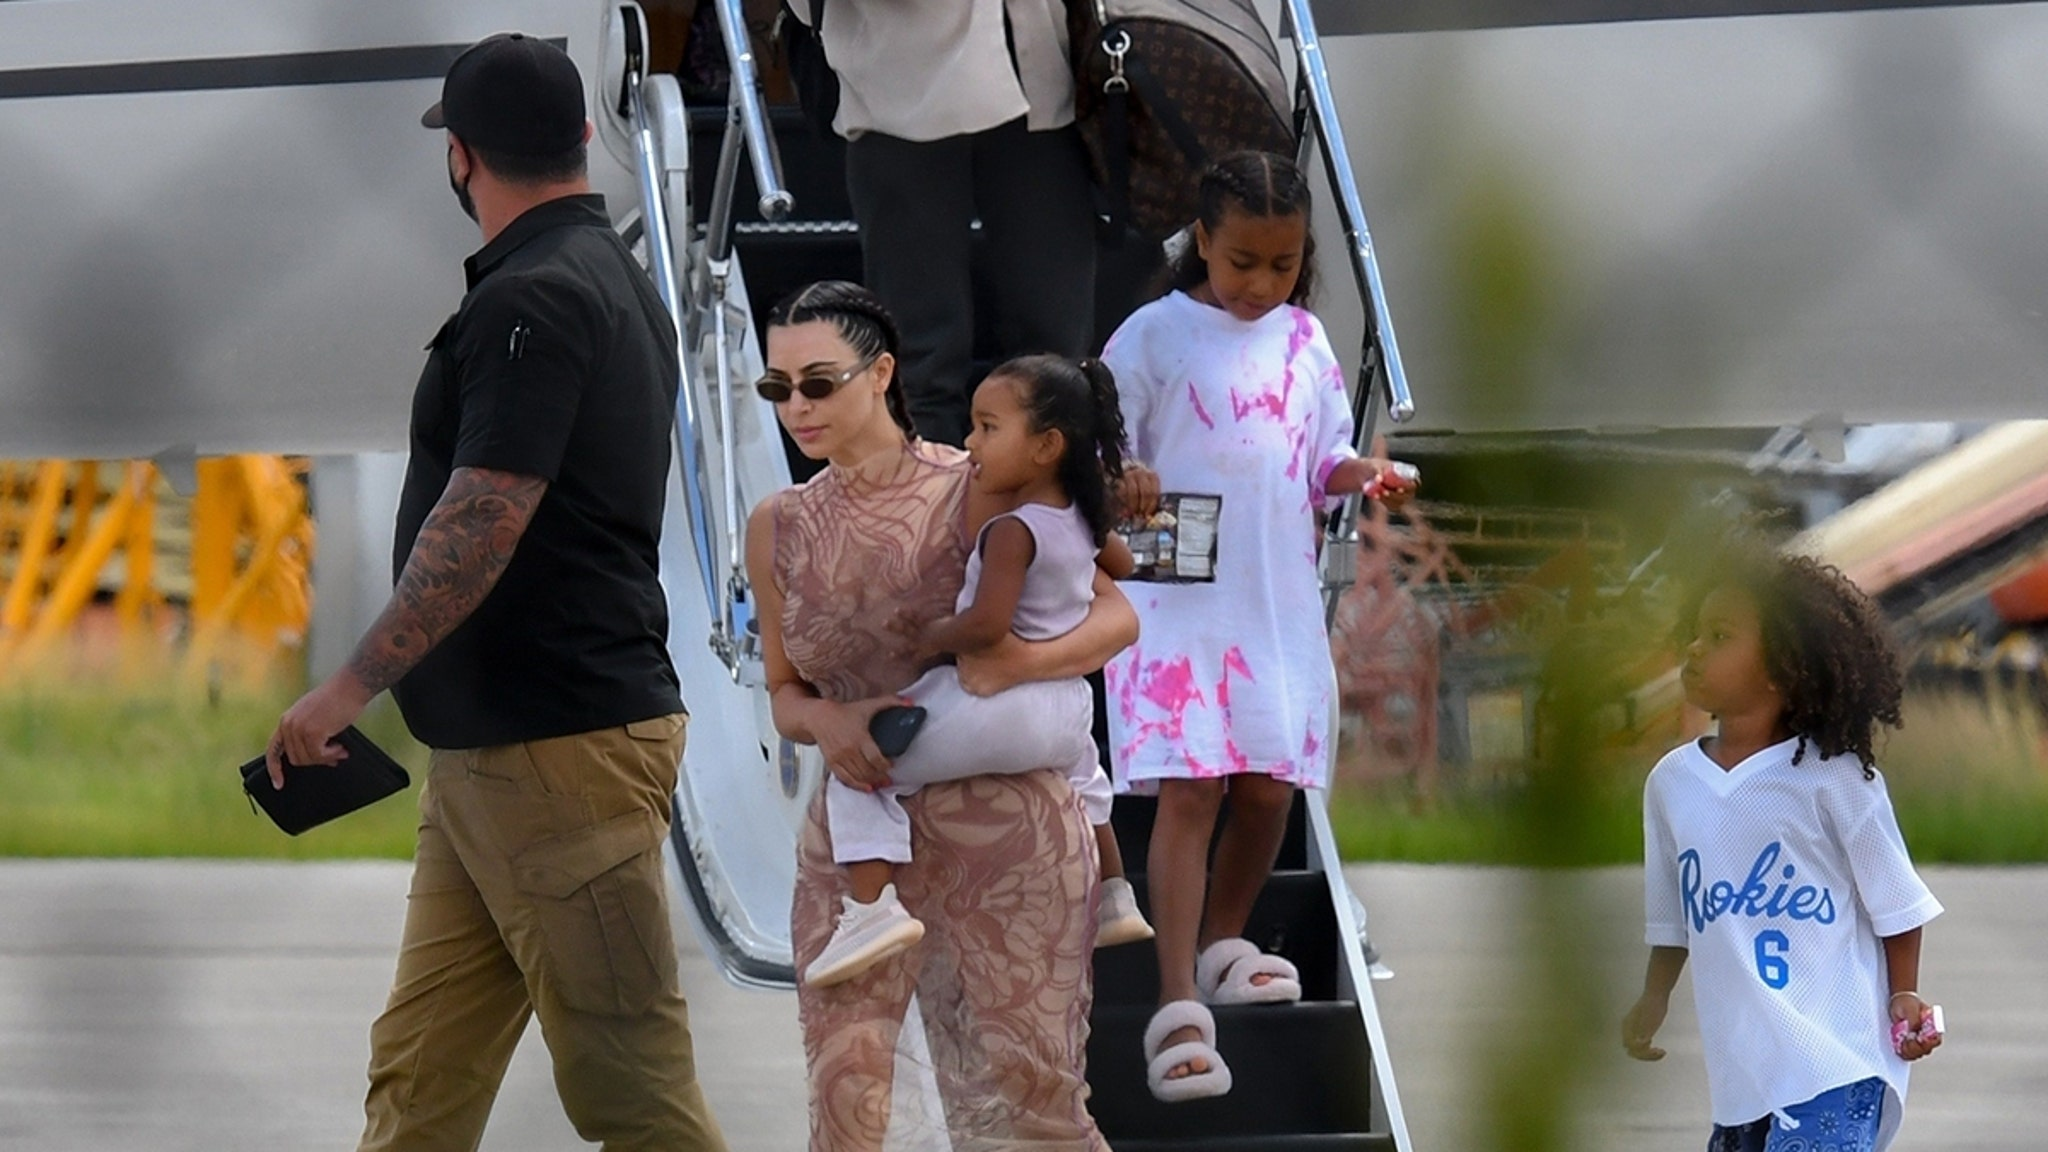 Kim and Kanye Touchdown in Miami ... Next Stop, Glamping